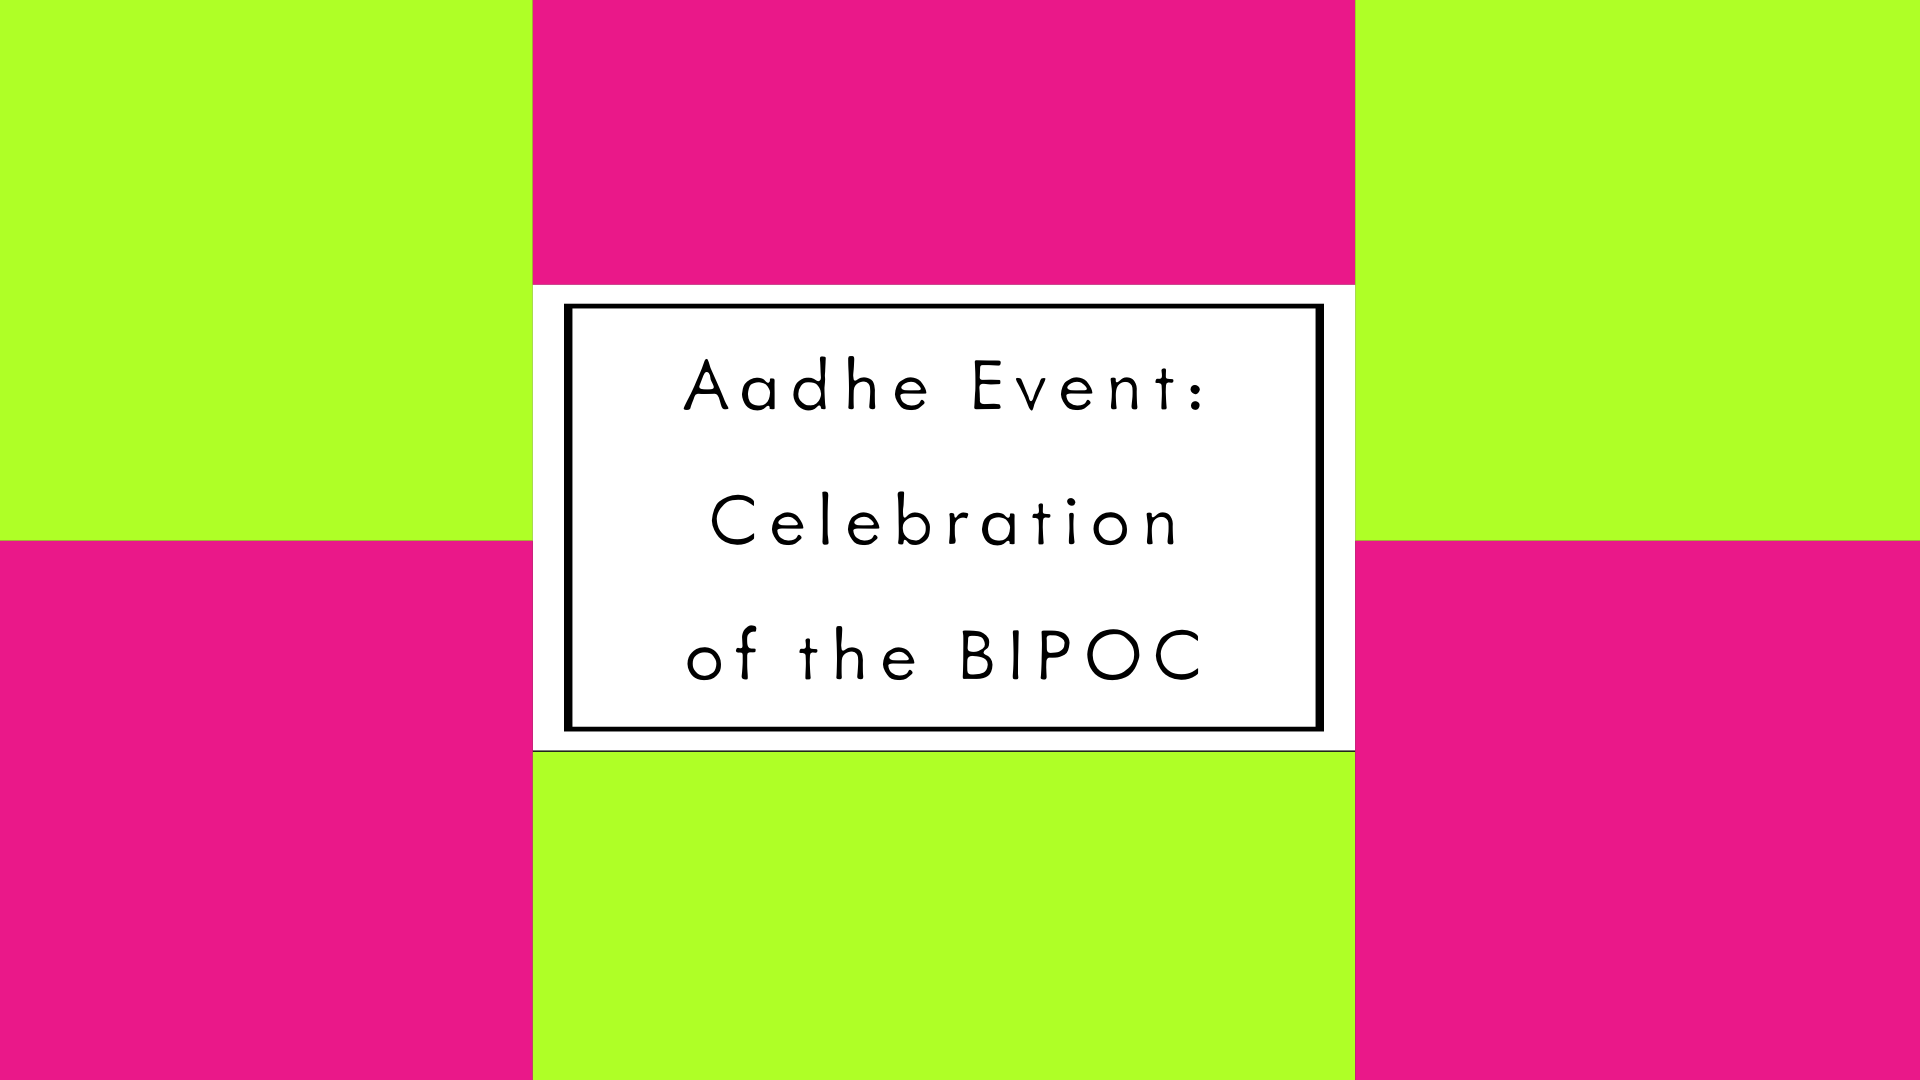 Aadhe Event: Celebration of the BIPOC